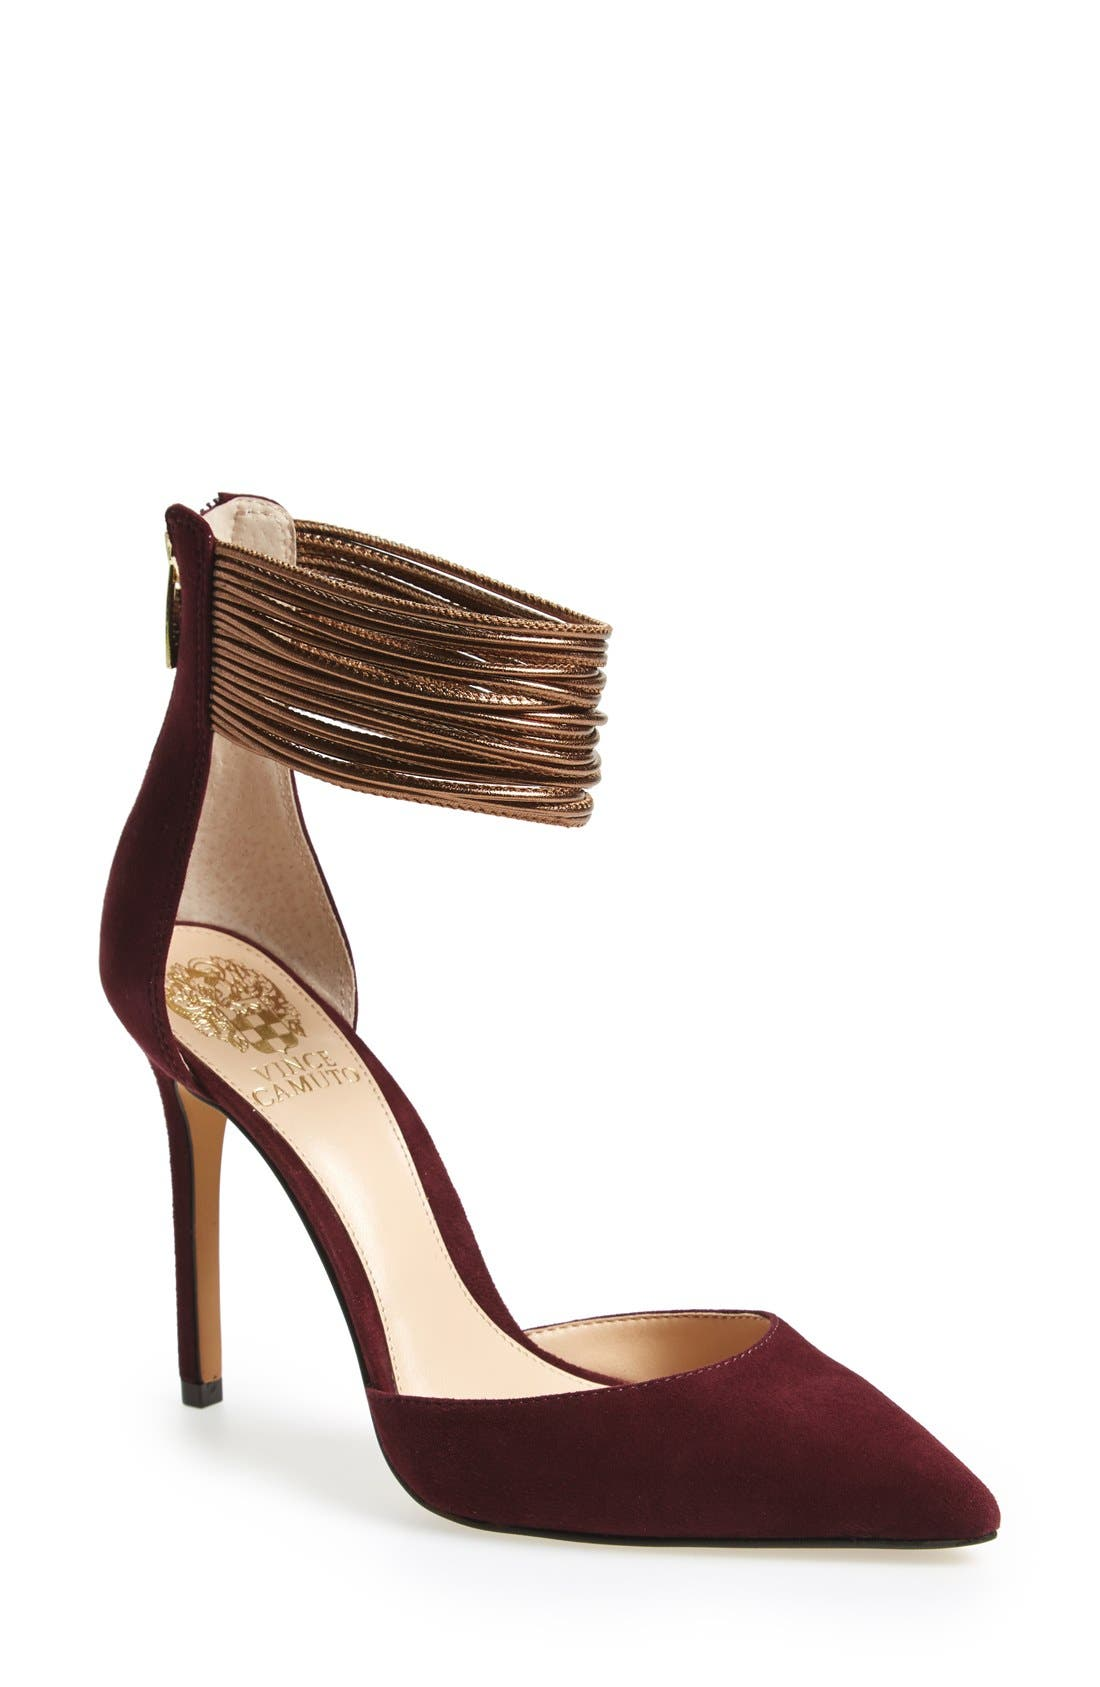 Alternate Image 1 Selected - Vince Camuto'Nayz' Pump (Women)